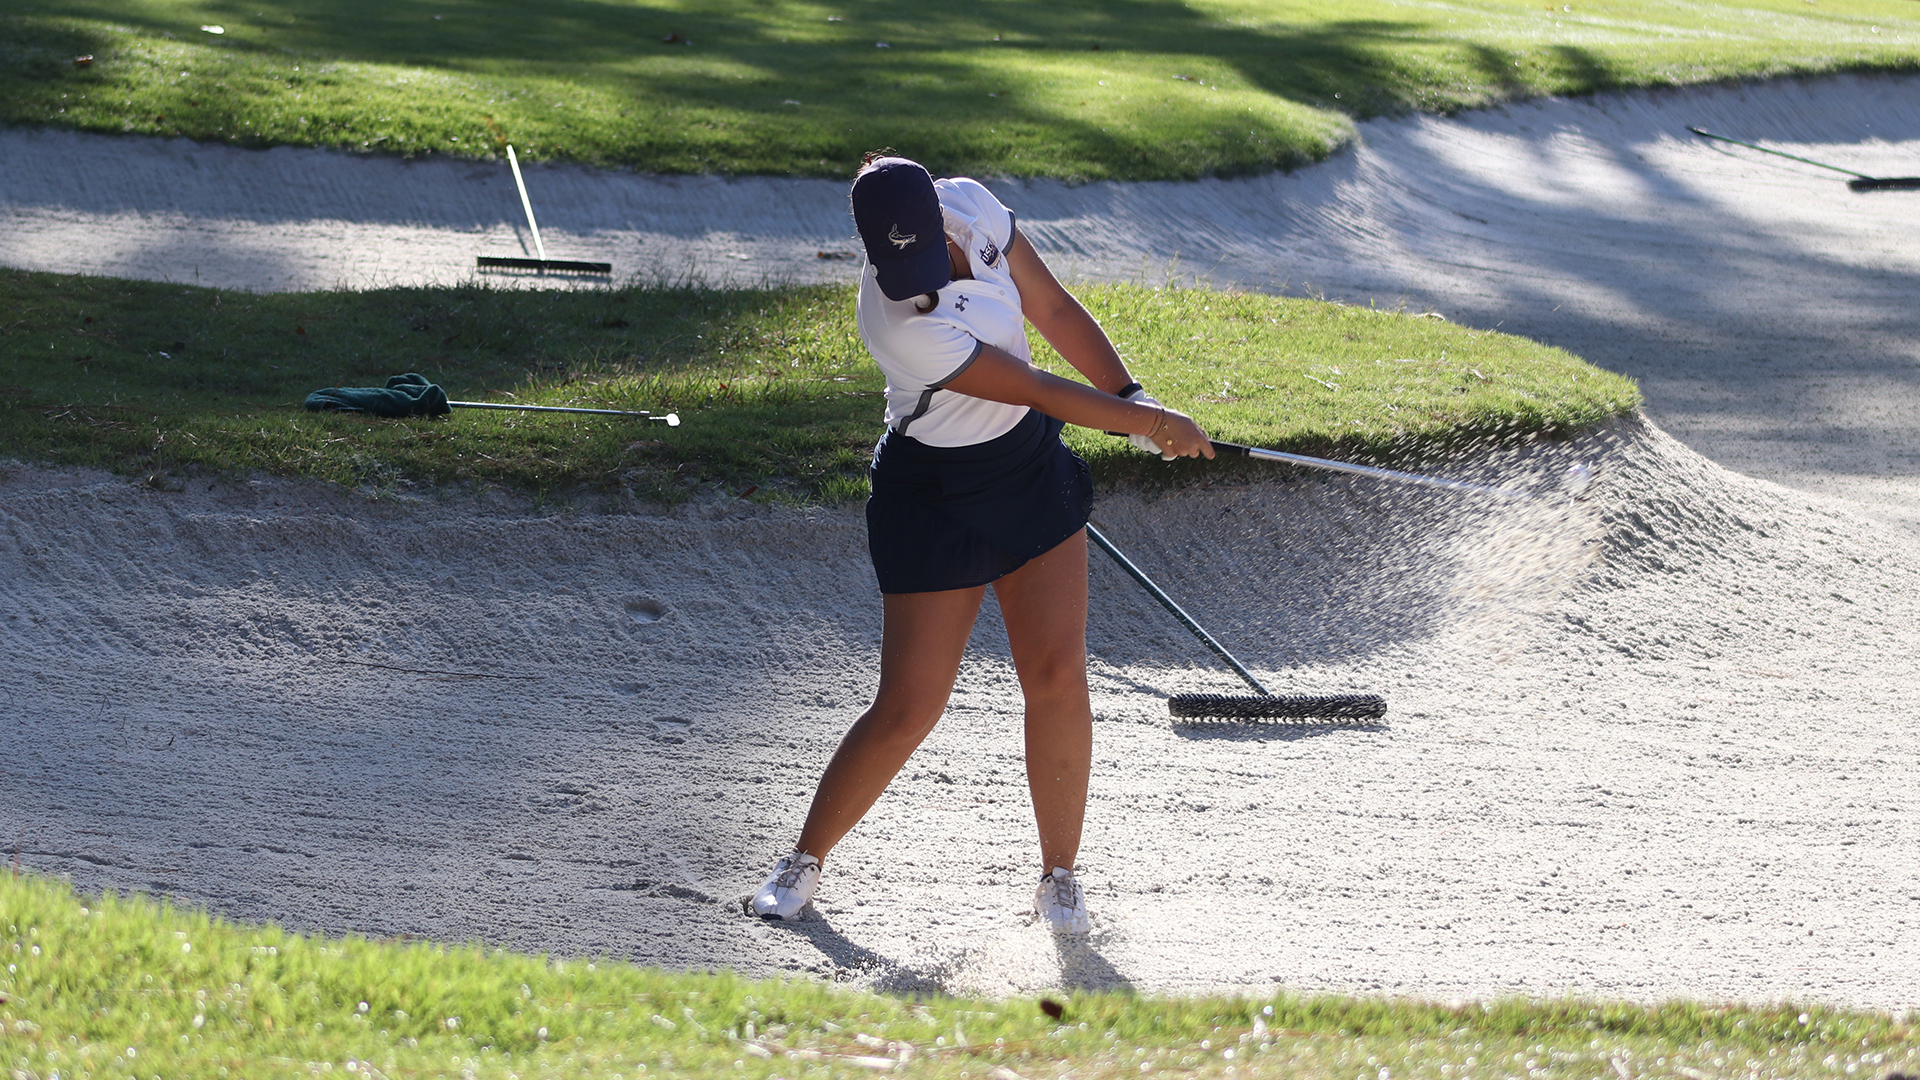 Uscb In Sixth Place After 36 Holes Of The Sand Shark Invitational